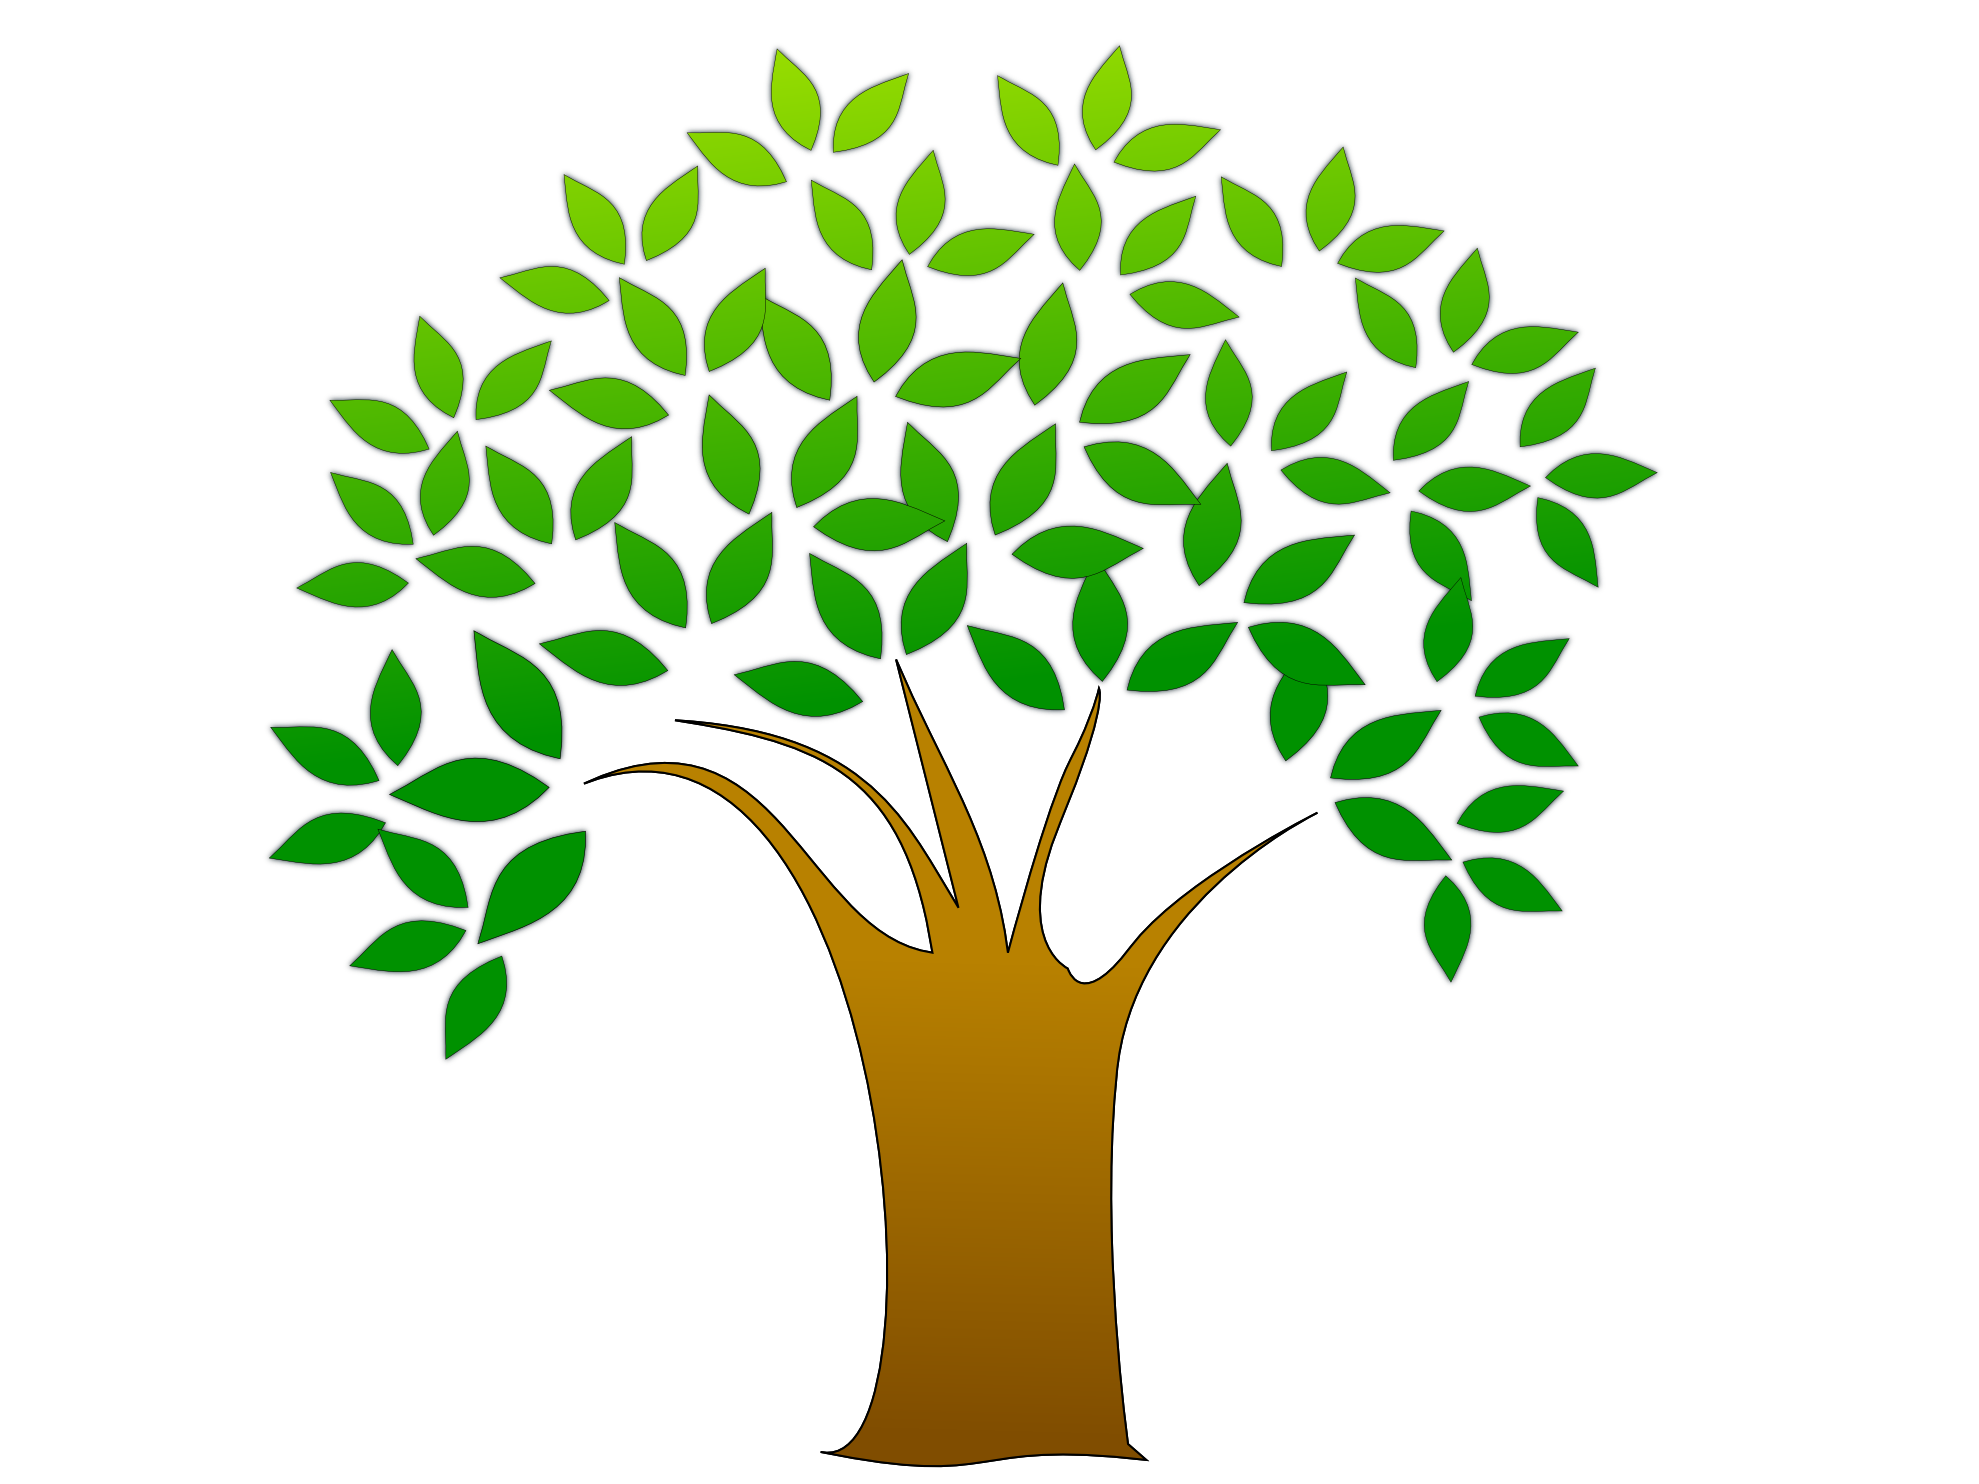 Tree clipart #13, Download drawings